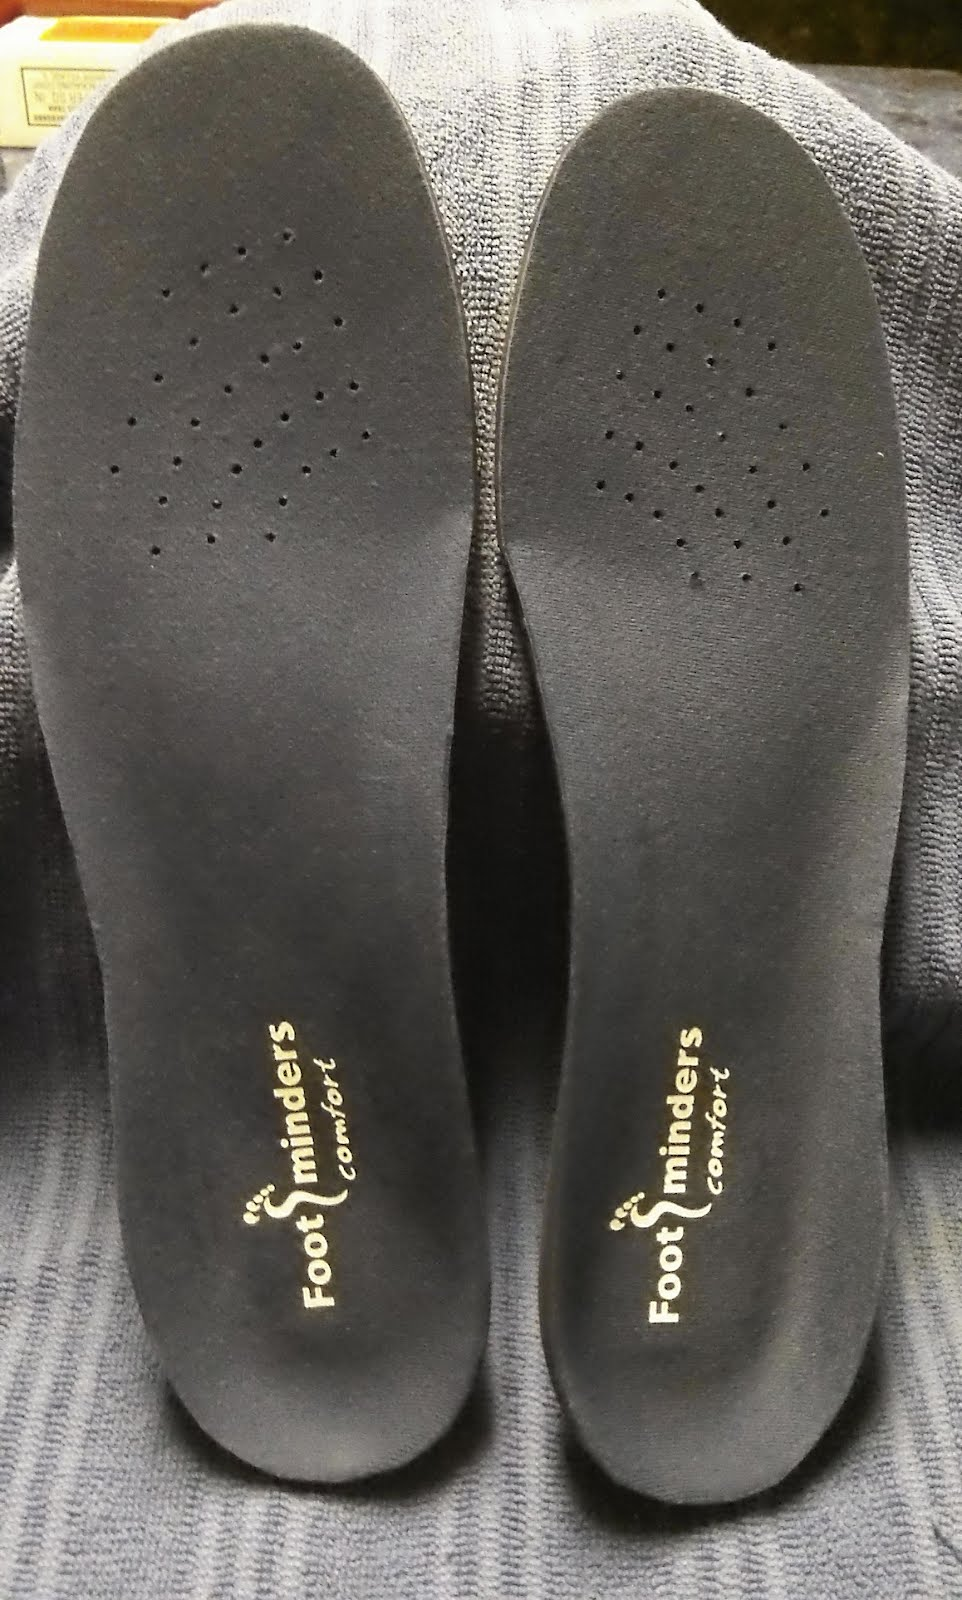 nazaroo comfortable most shoe reviewed compared comforter in nicershoes best orthotics insoles